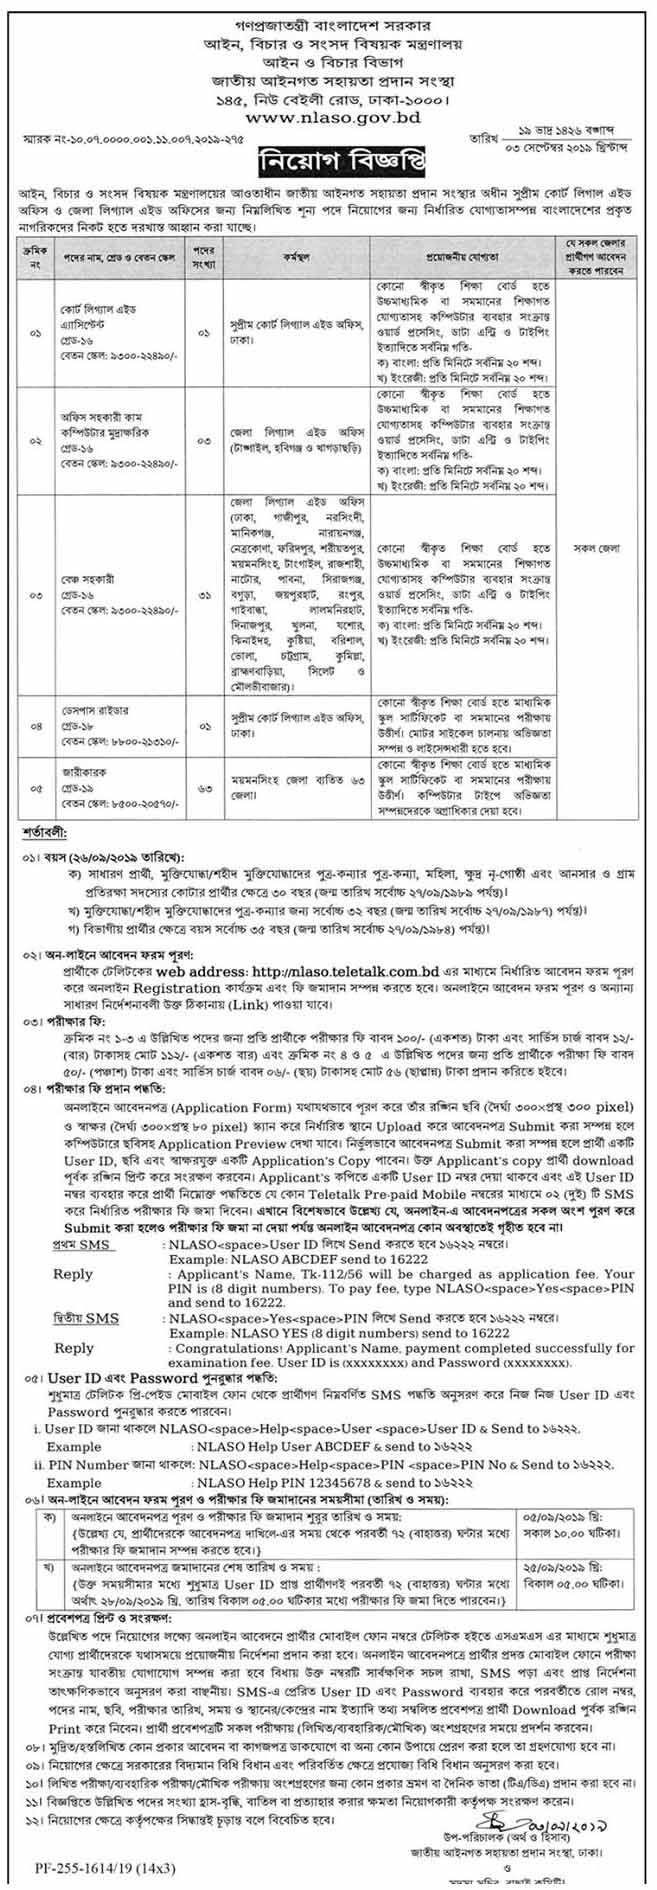 Ministry of Law, Justice and Parliamentary Affairs Job Circular